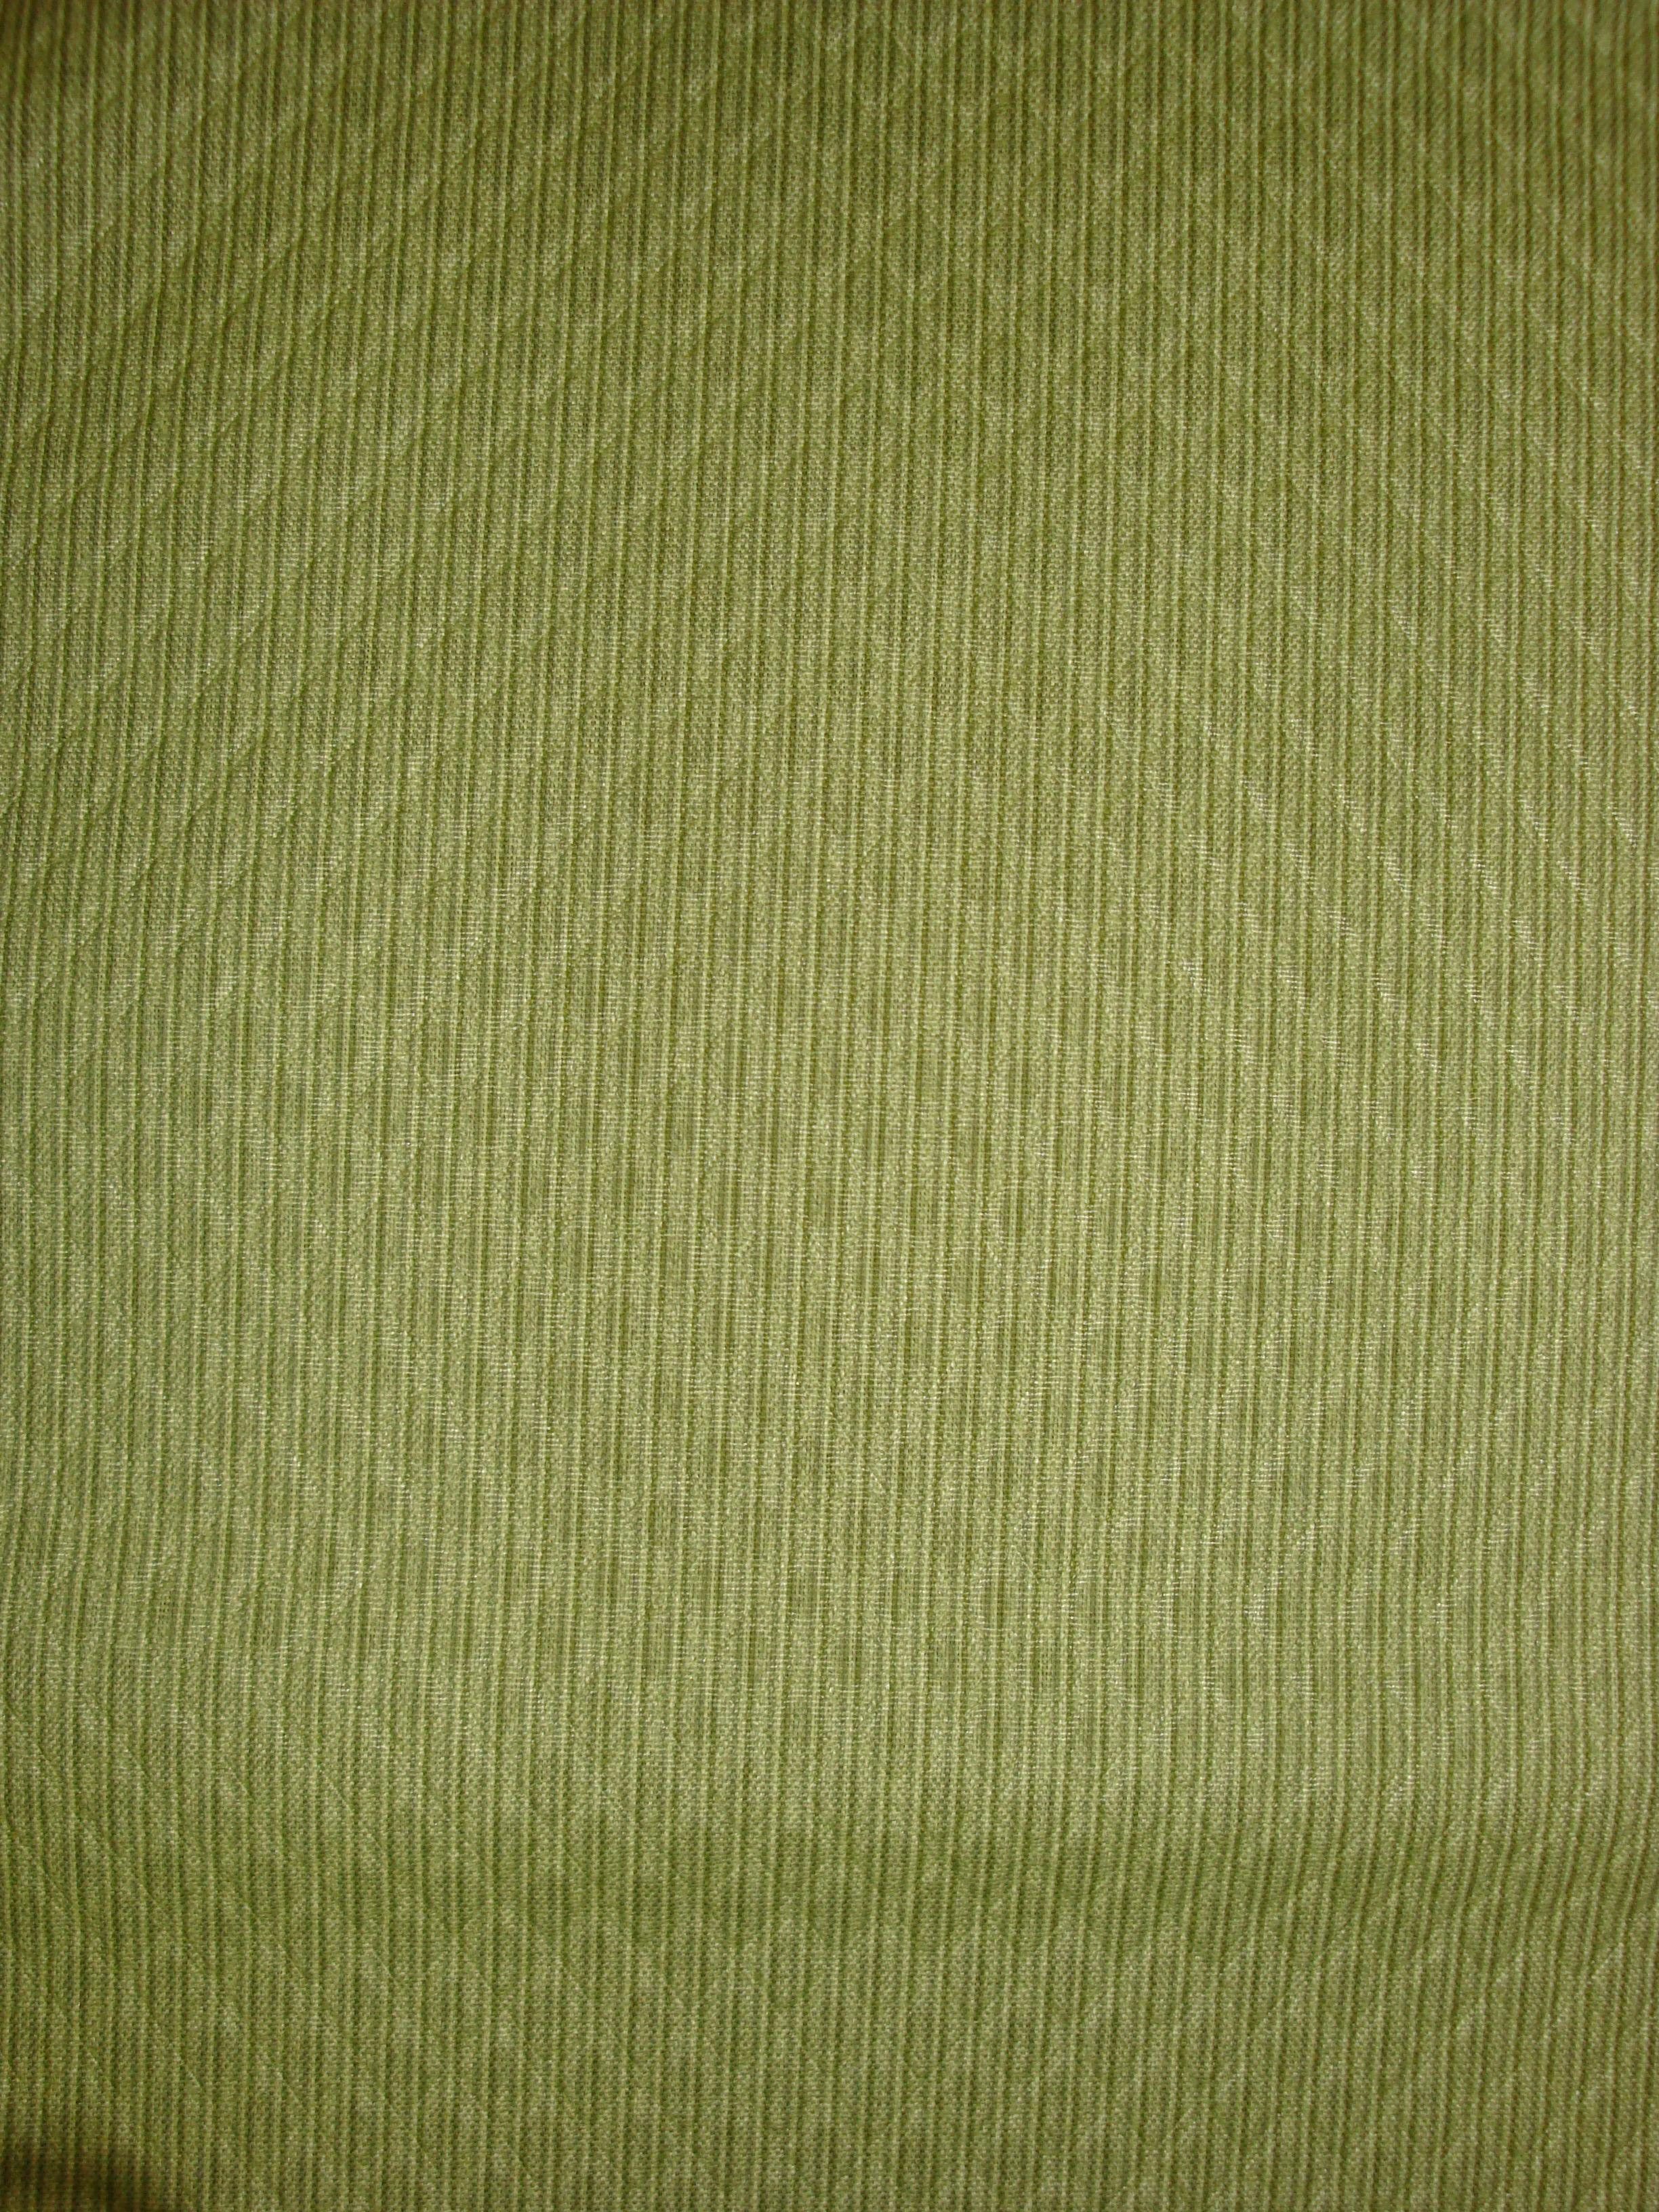 Coco Cay Dining Armchair in Urban Mahogany-Fabric:Green Diamonds by Boca Rattan